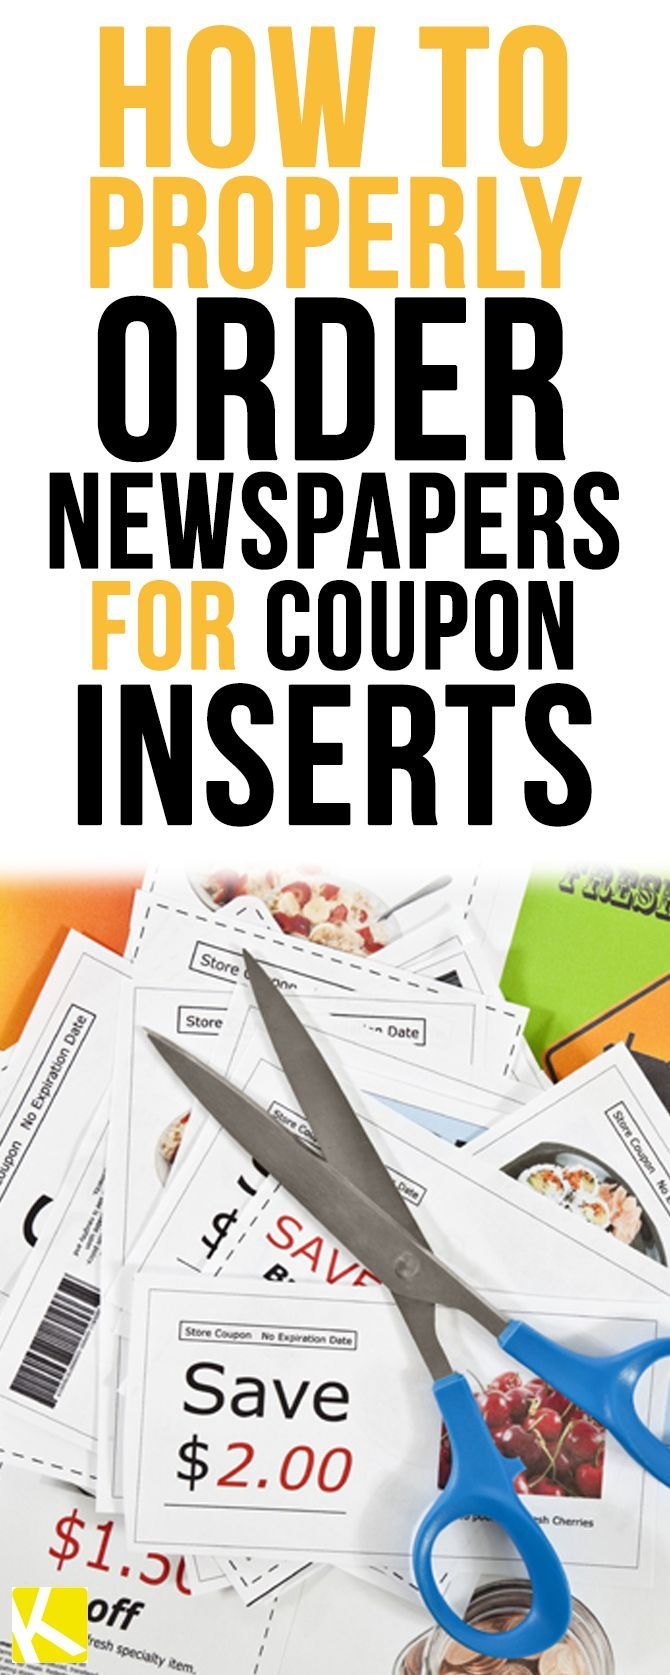 How To Properly Order Newspapers For Coupon Inserts Coupon Inserts Couponing For Beginners Coupons